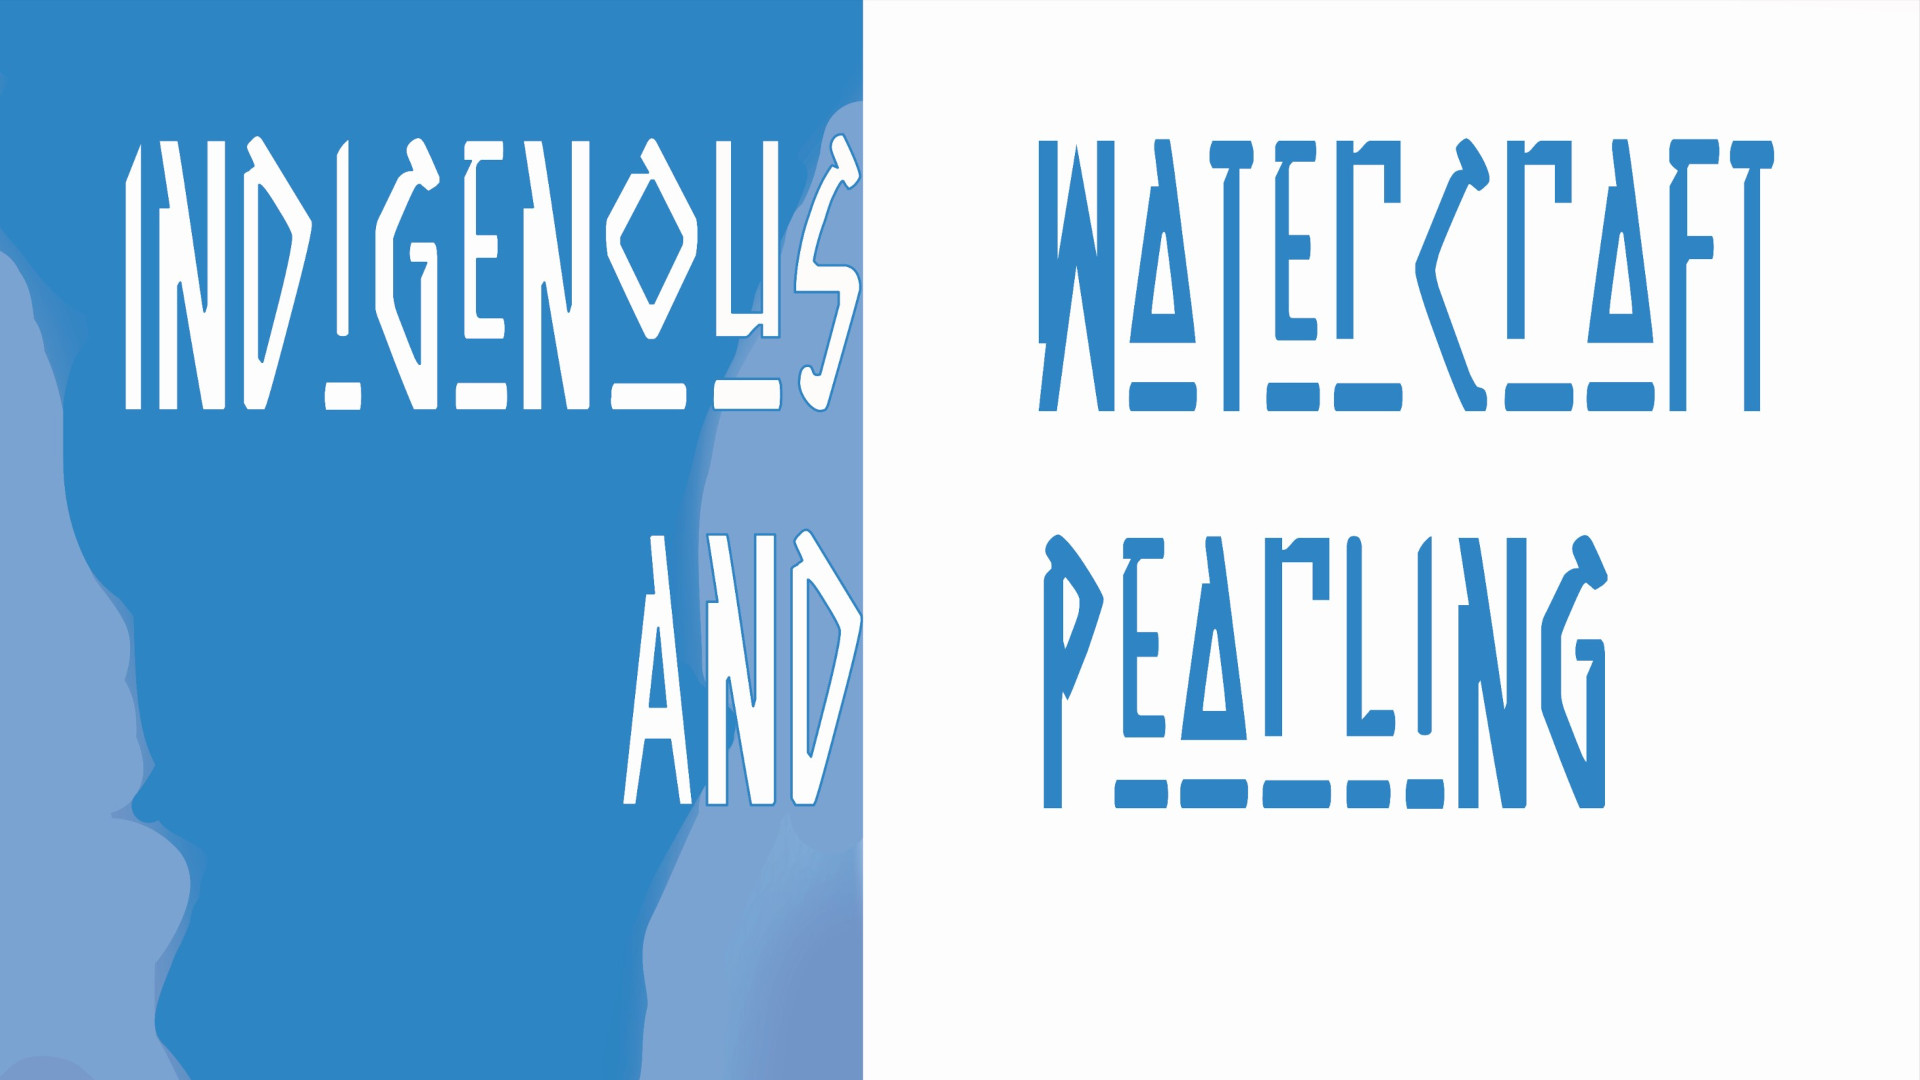 Indigenous Watercraft and Pearling